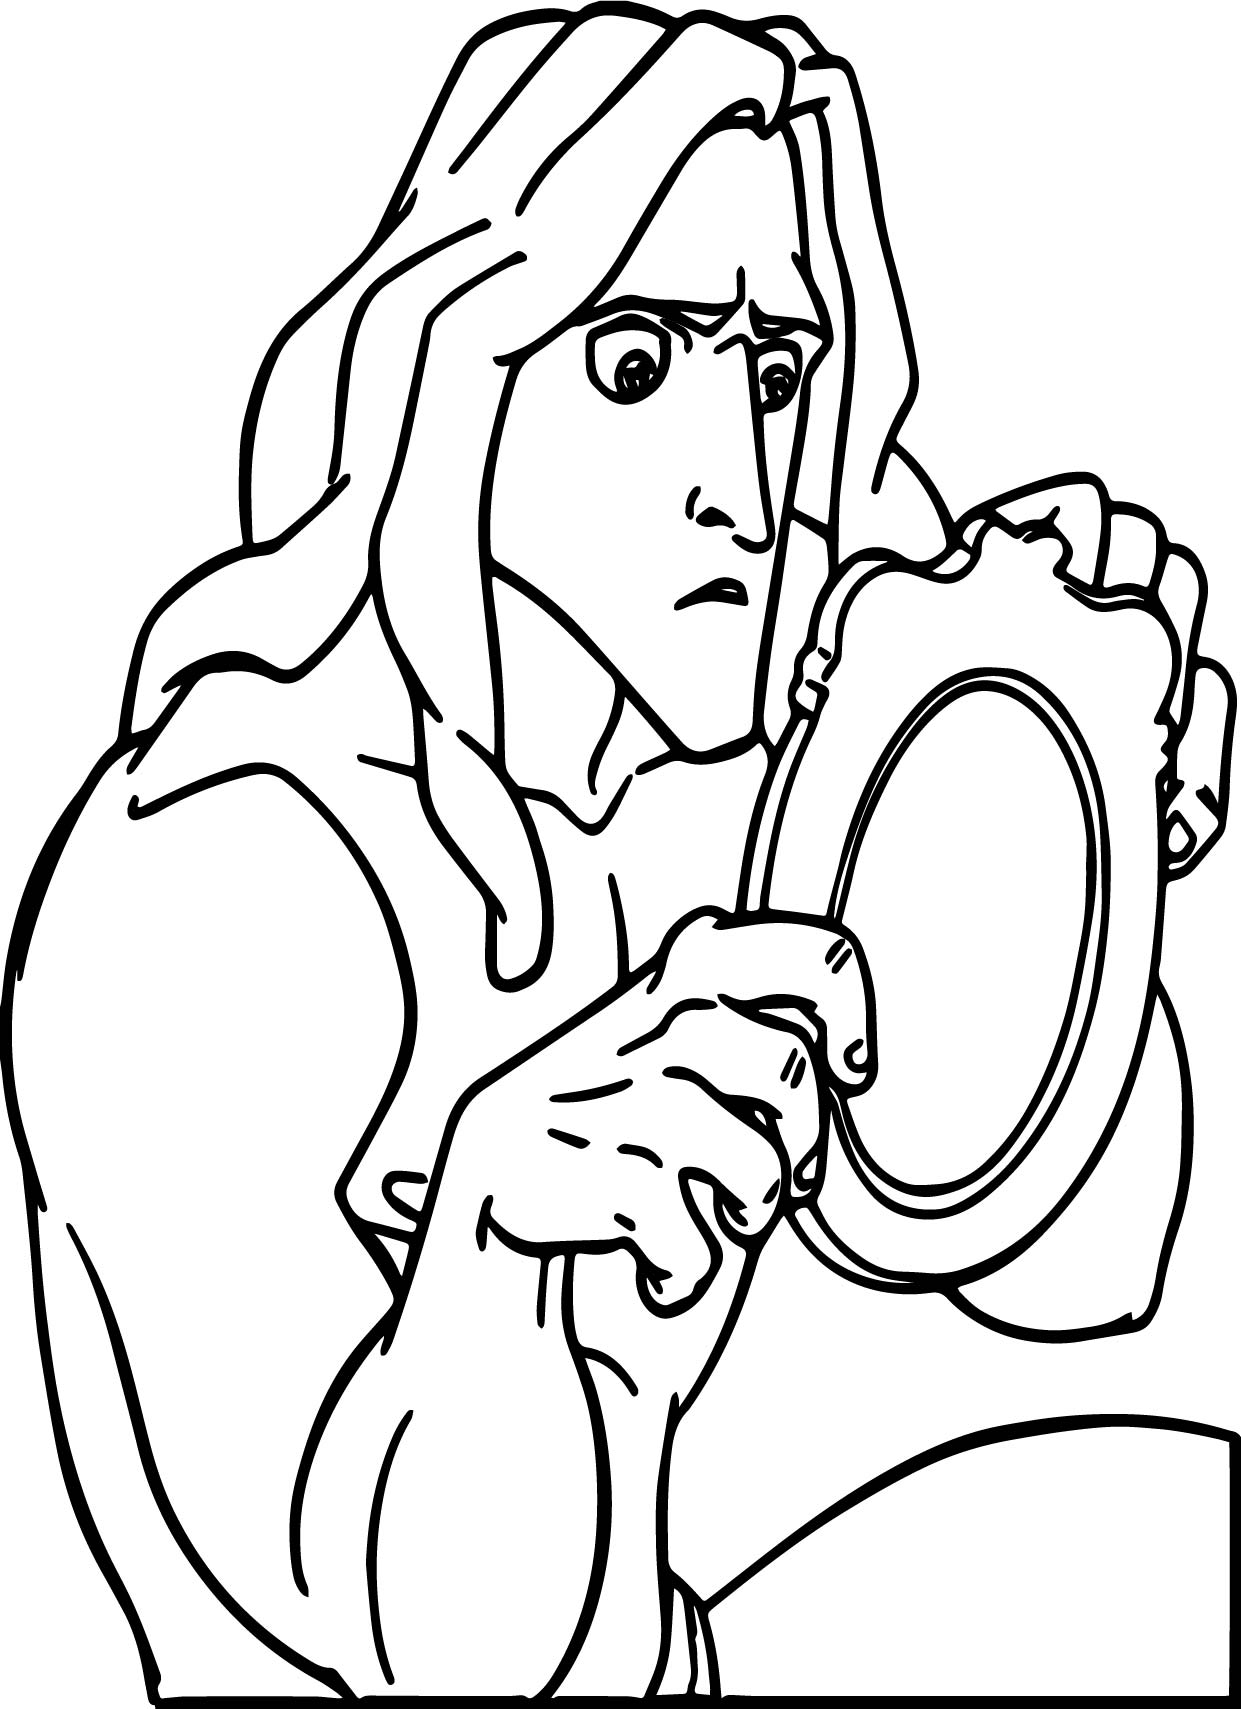 Tarzan picture coloring page for Tarzan coloring pages